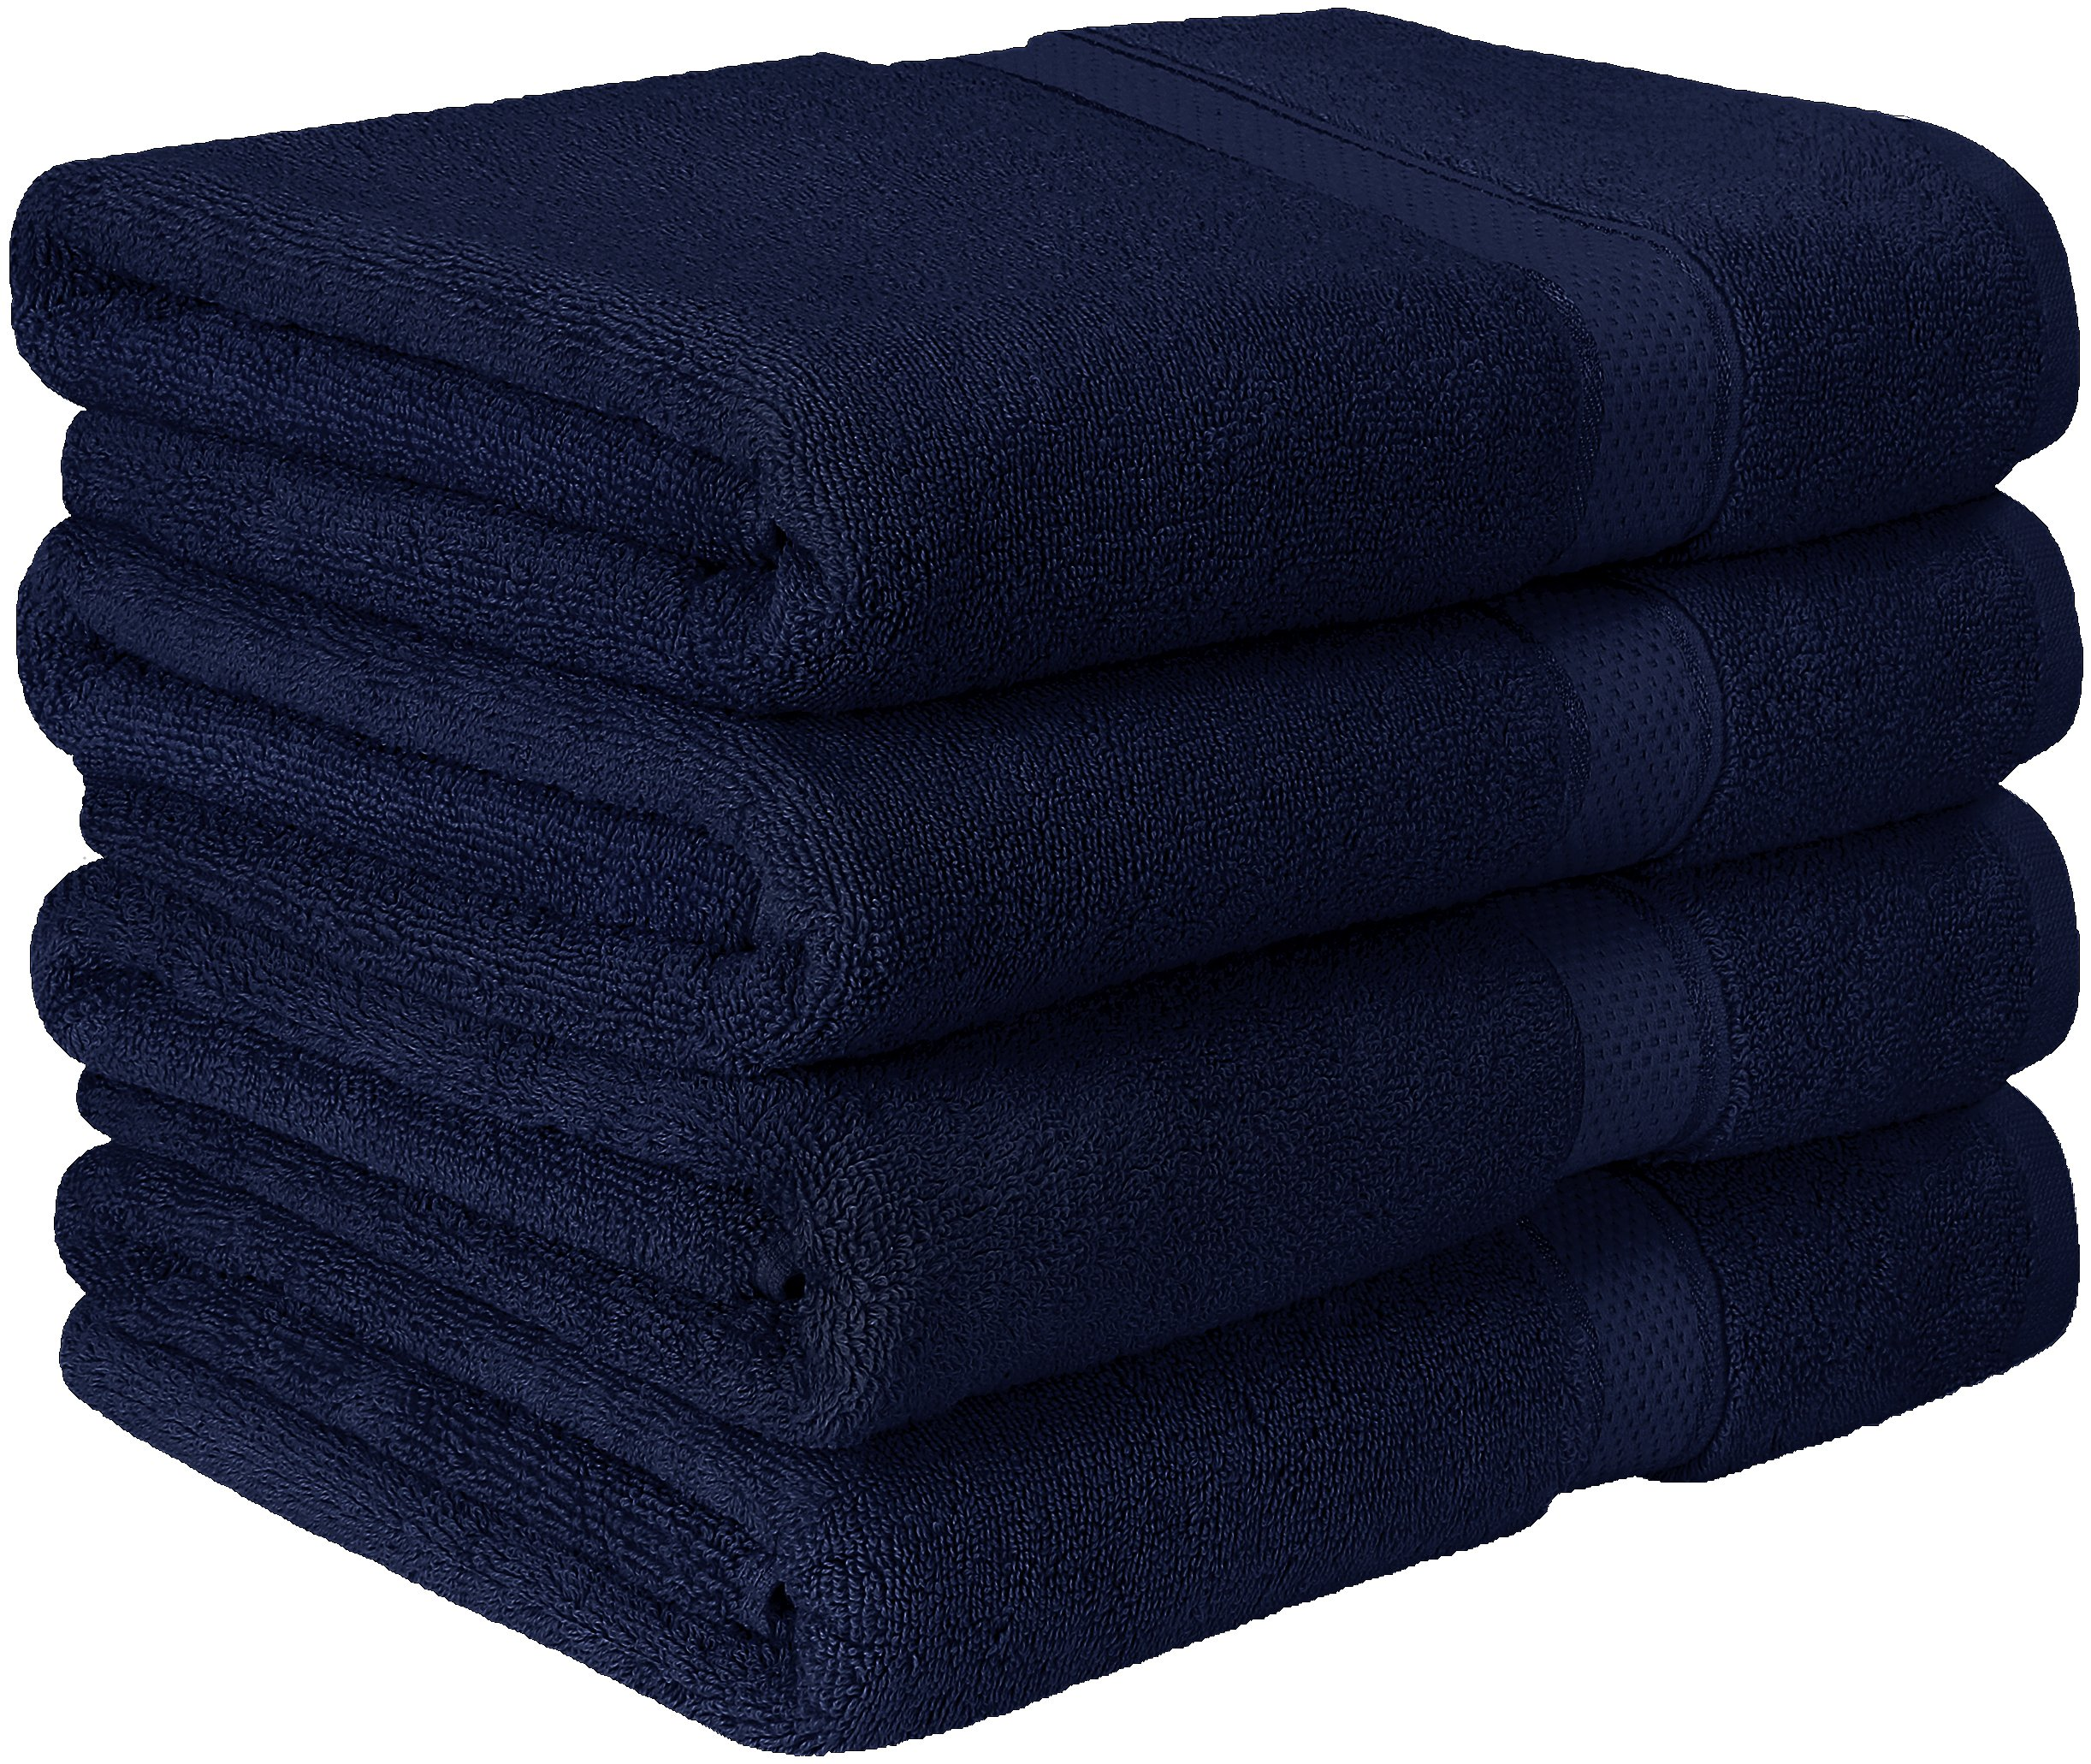 Utopia Towels Premium Bath Towel Set (Pack of 4, 27 x 54 Inches) 100% Ring-Spun Cotton Towels for Hotel and Spa - Maximum Softness and Highly Absorbent (Navy Blue)